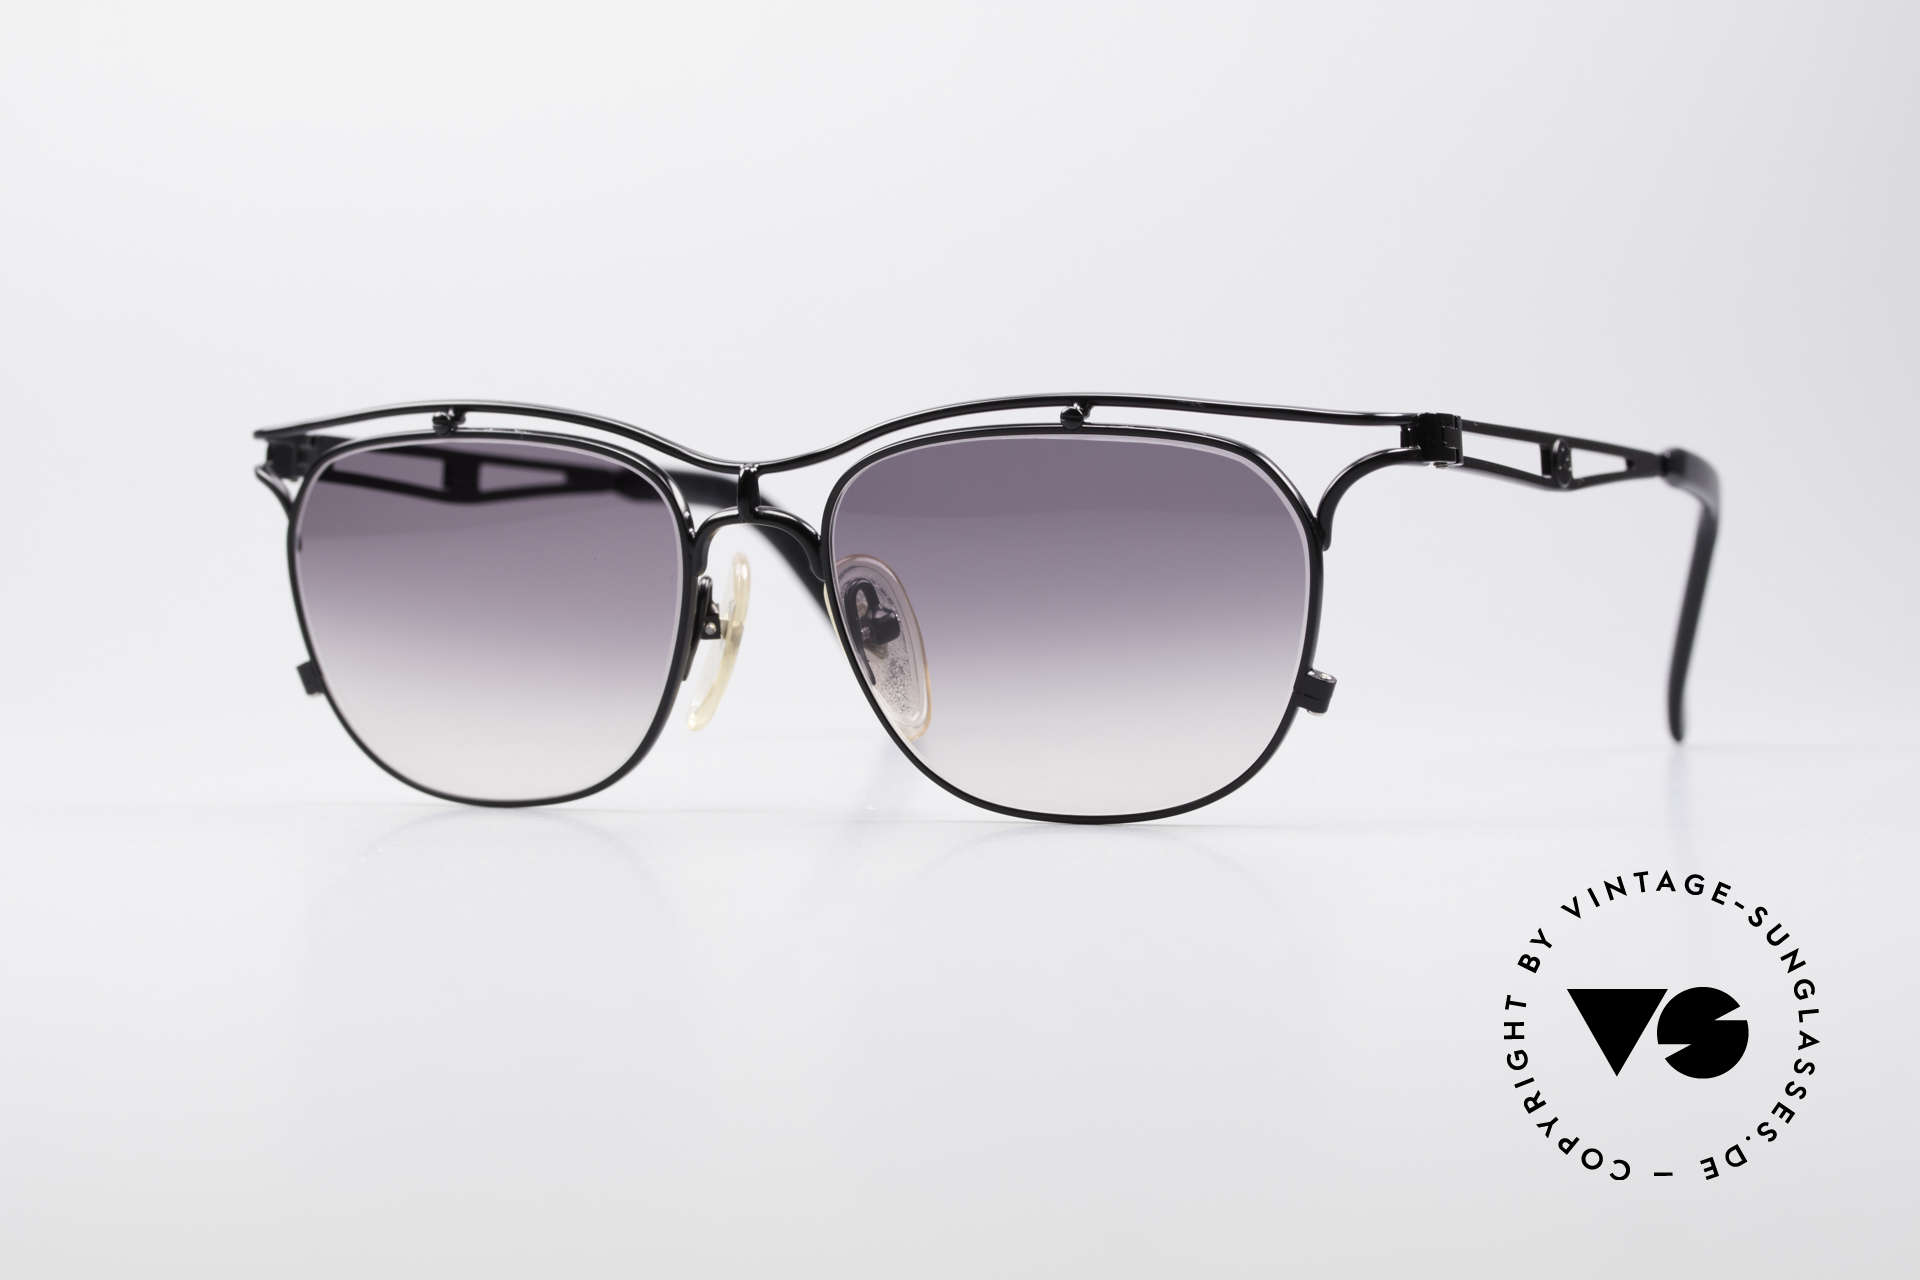 Jean Paul Gaultier 55-2178 No Retro JPG Vintage Frame, very noble 90's designer sunglasses by JP Gaultier, Made for Men and Women